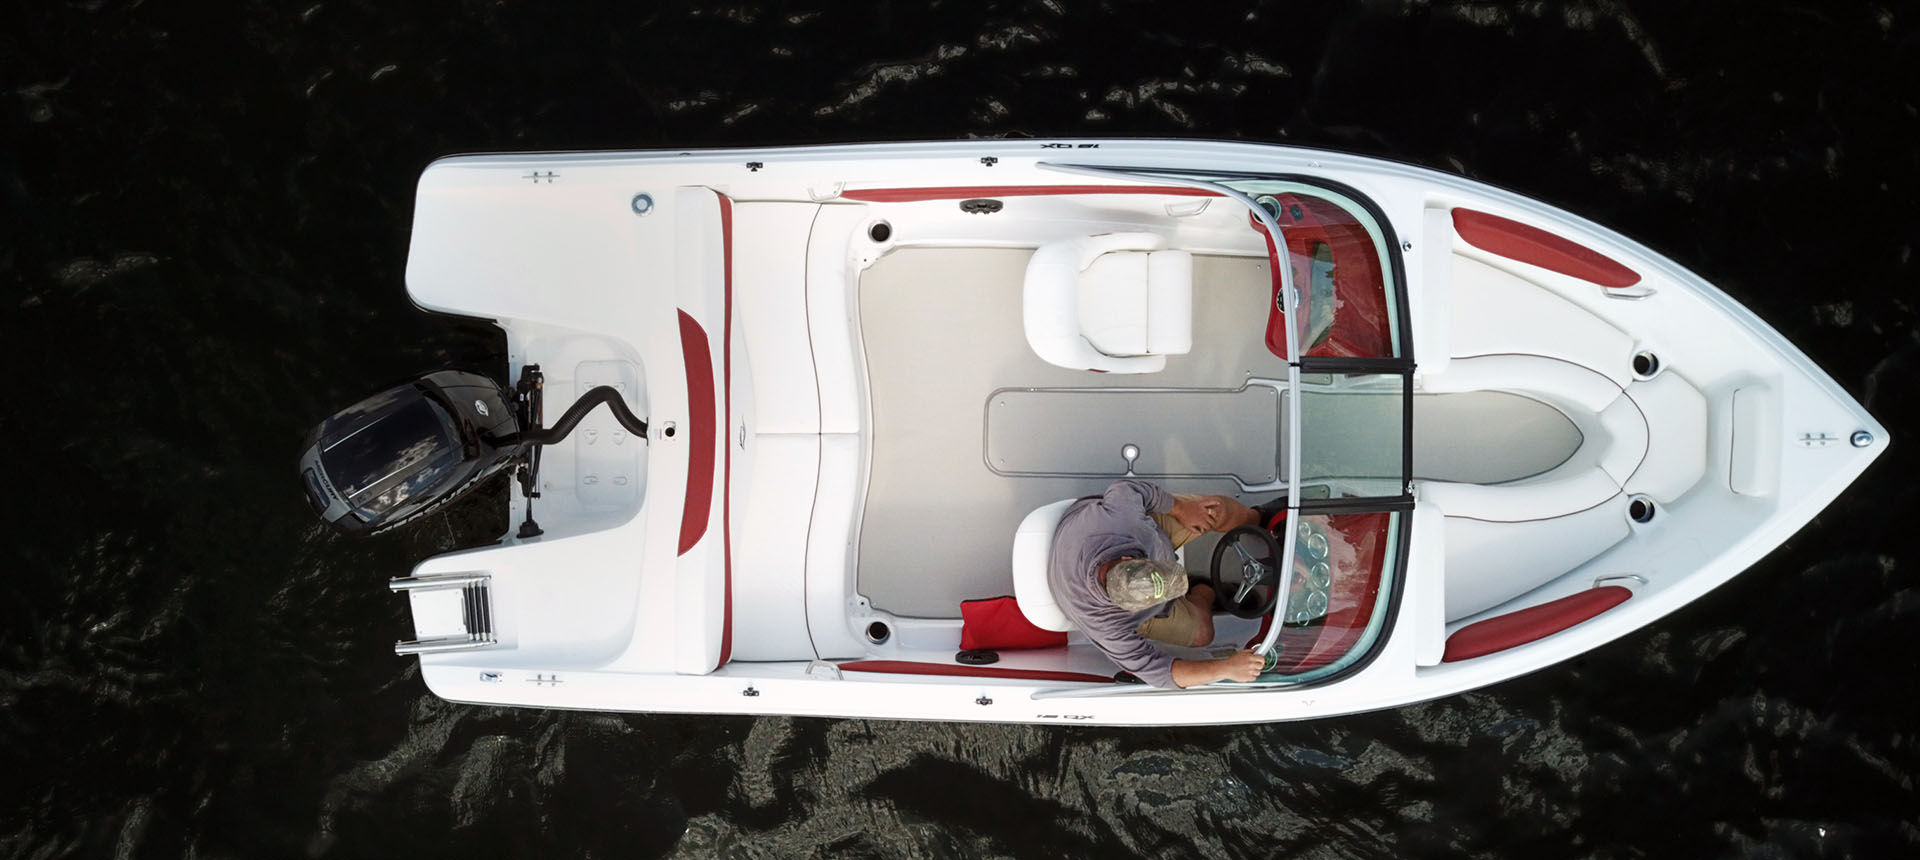 Pic overhead view of 18QX Outboard boat